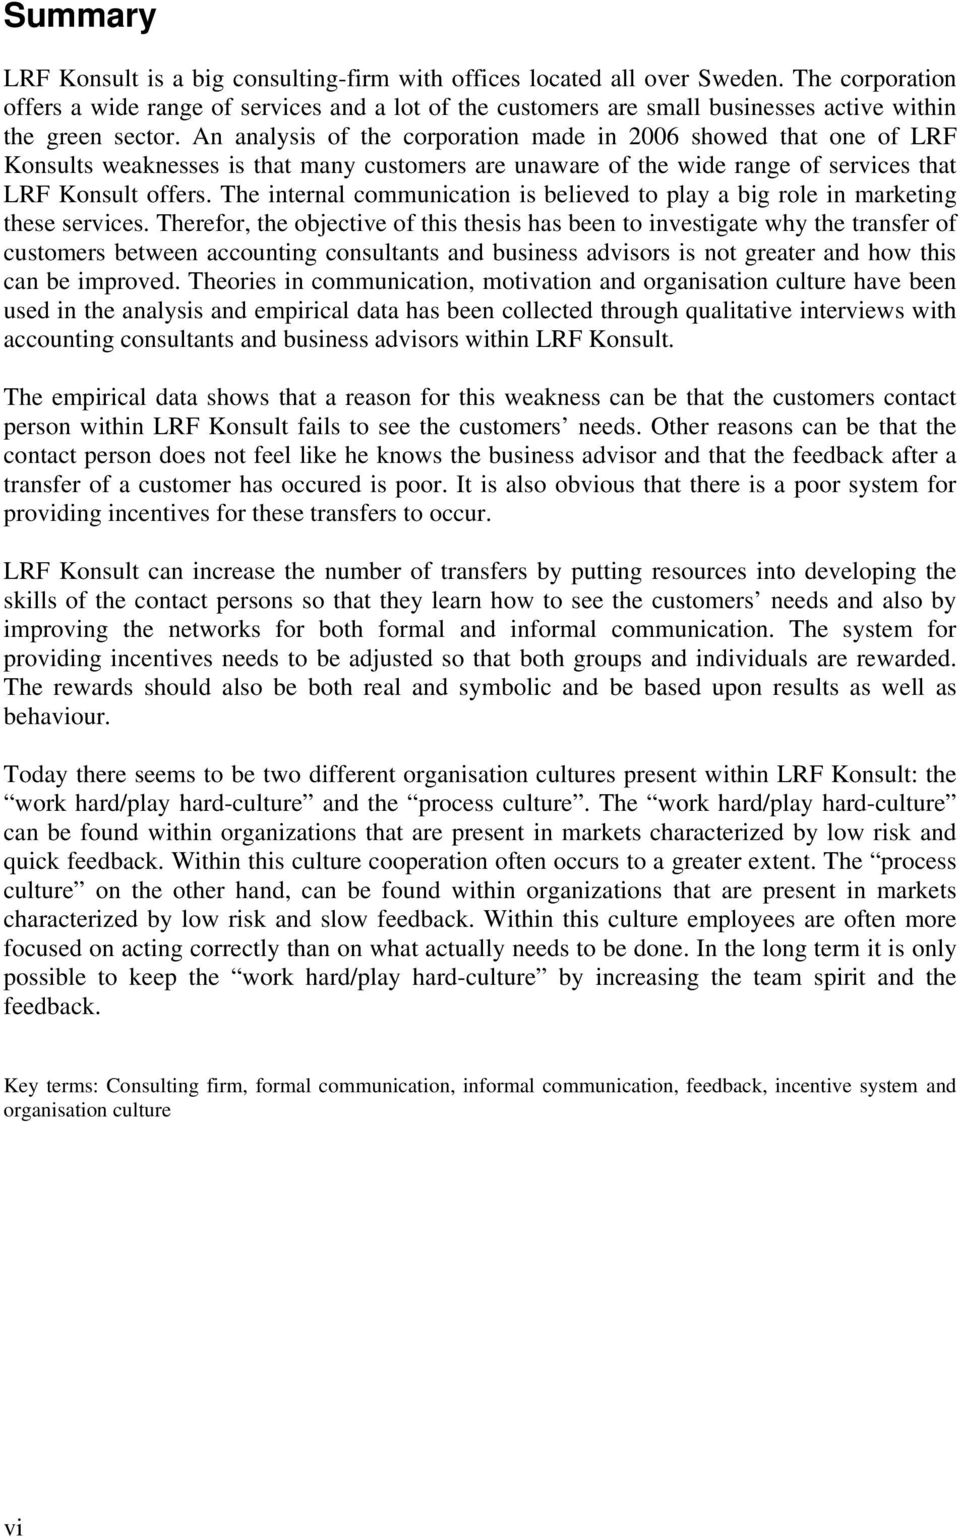 An analysis of the corporation made in 2006 showed that one of LRF Konsults weaknesses is that many customers are unaware of the wide range of services that LRF Konsult offers.